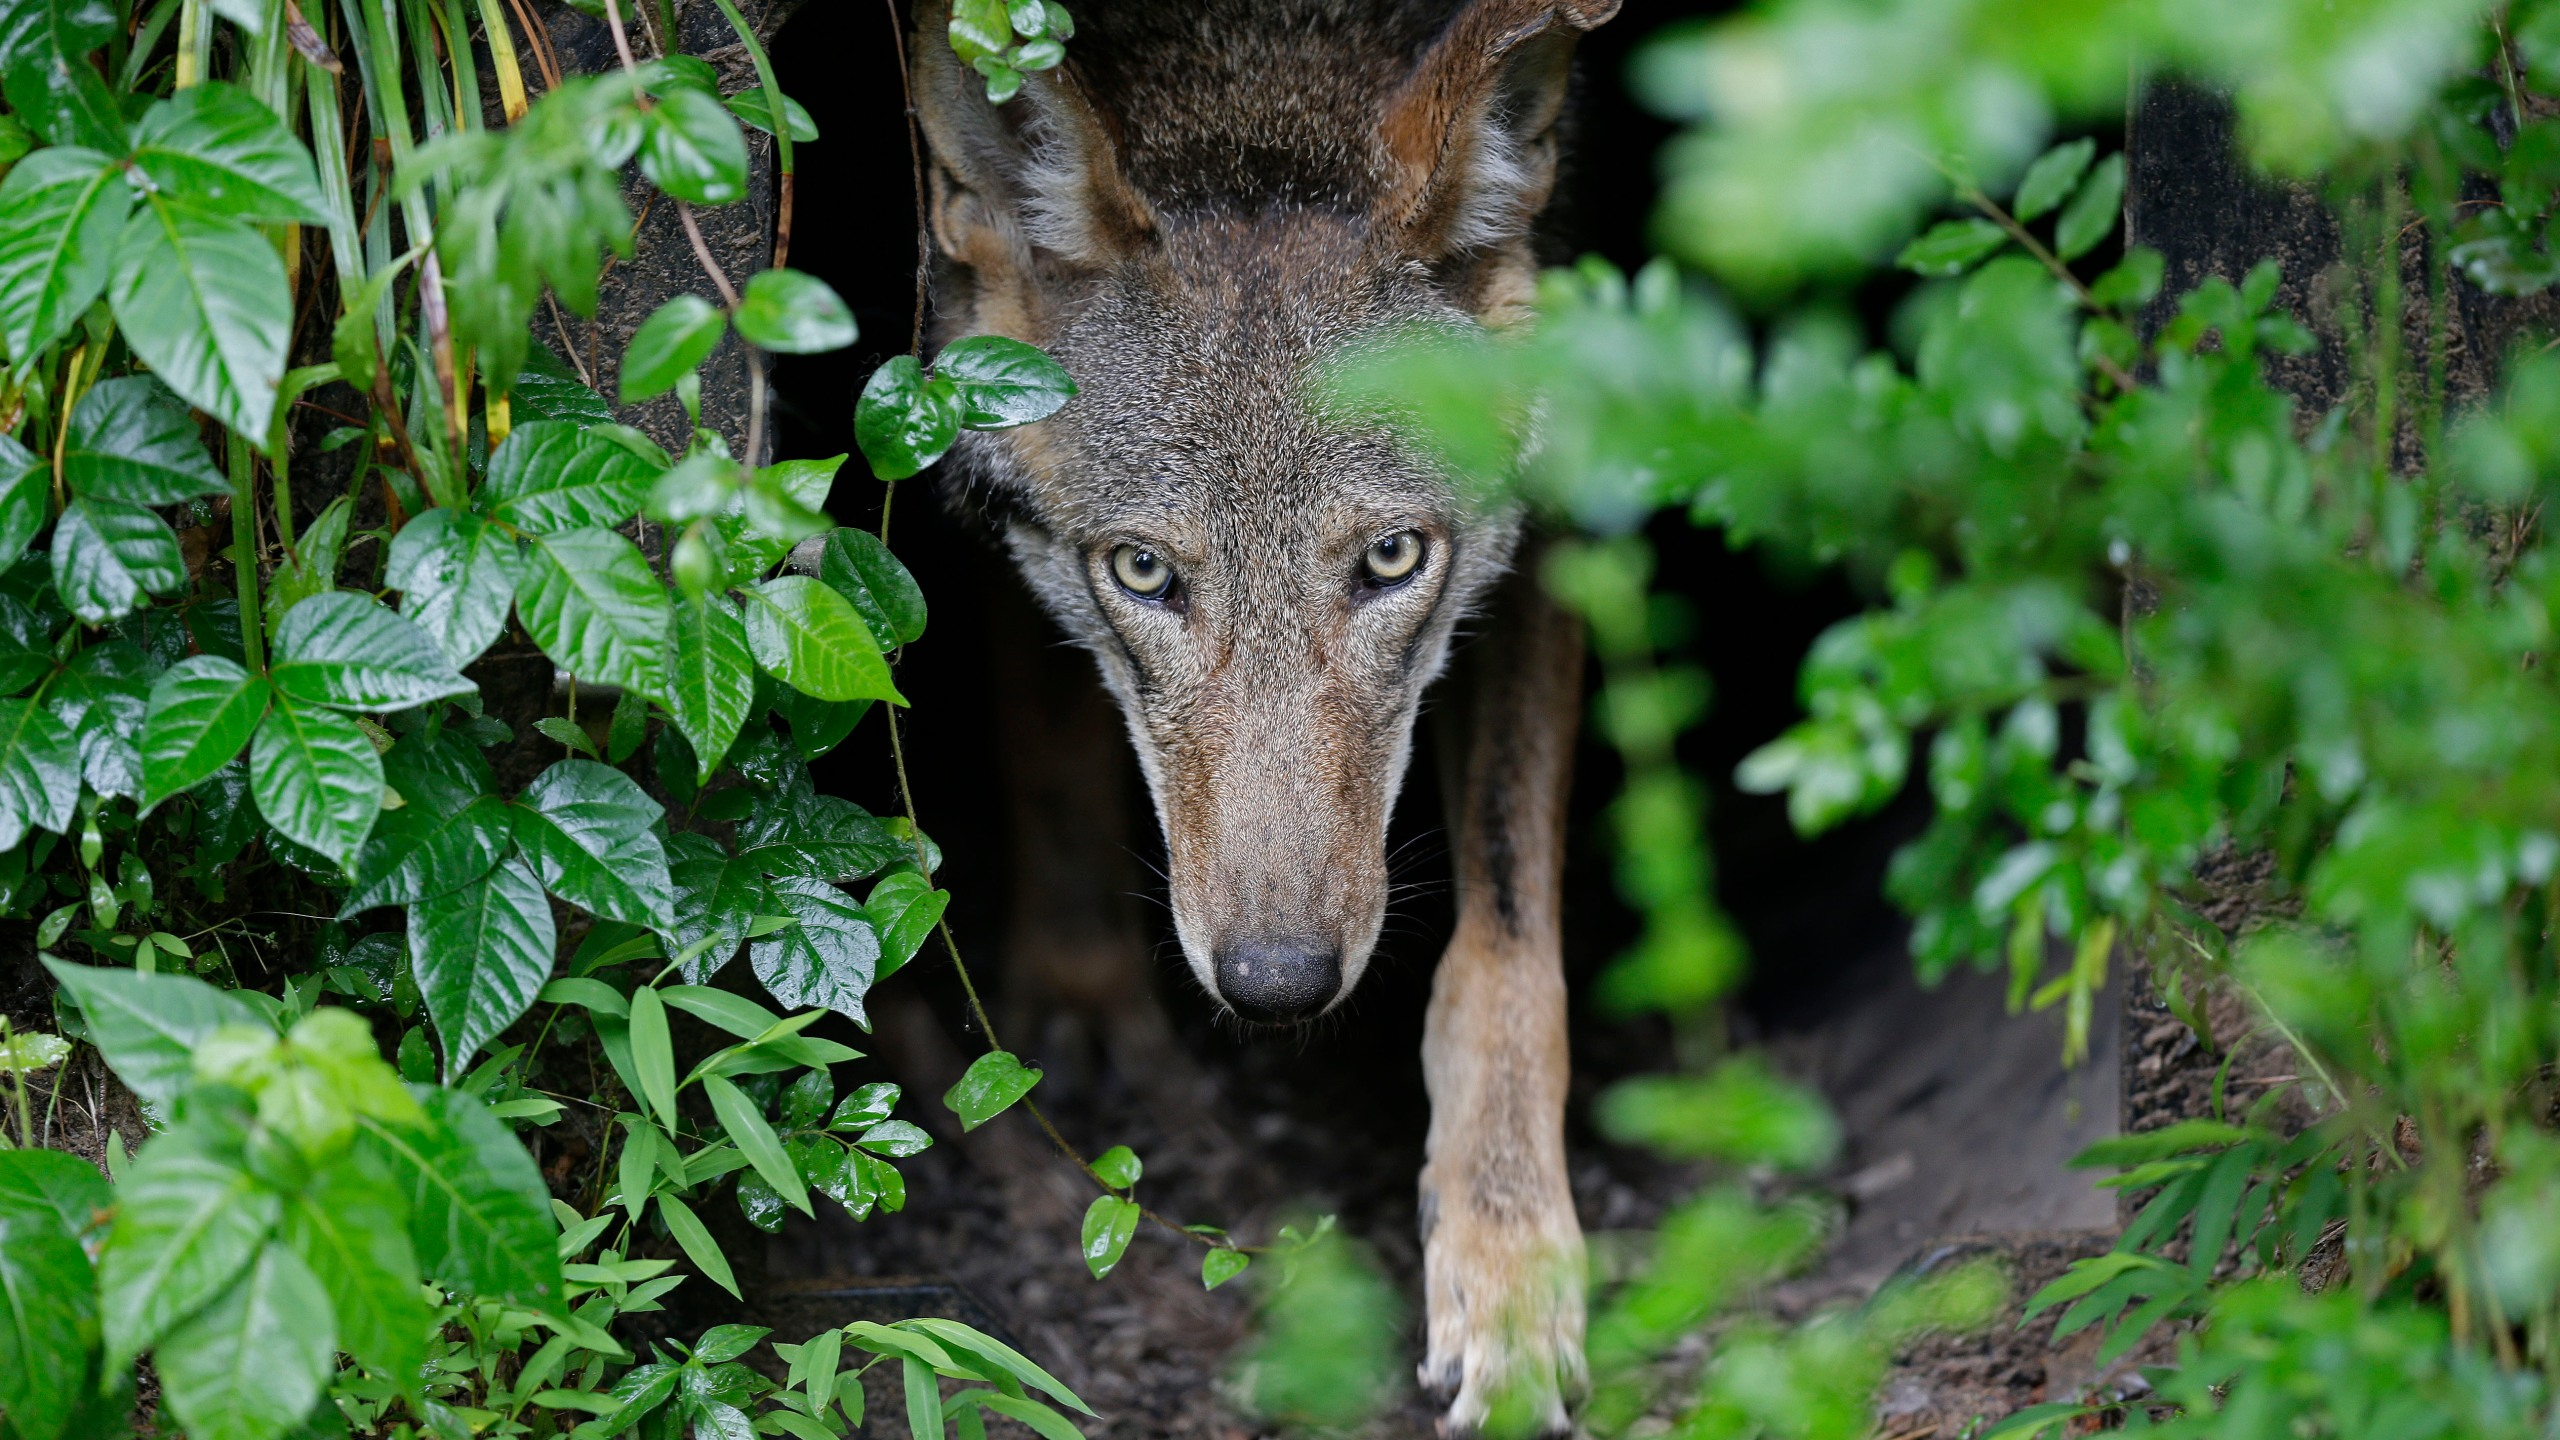 FILE - In this Monday, May 13, 2019 file photo, A female red wolf emerges from her den sheltering newborn pups at the Museum of Life and Science in Durham, N.C. A judge has ordered the federal government to come up with a plan to release more endangered red wolves from breeding programs to bolster the dwindling wild population. U.S. District Judge Terrence Boyle signed an order Thursday, Jan. 21, 2021 directing the U.S. Fish and Wildlife Service to draft a plan by March 1 for releasing captive-bred wolves into the wolves' designated habitat in North Carolina. (AP Photo/Gerry Broome, File)